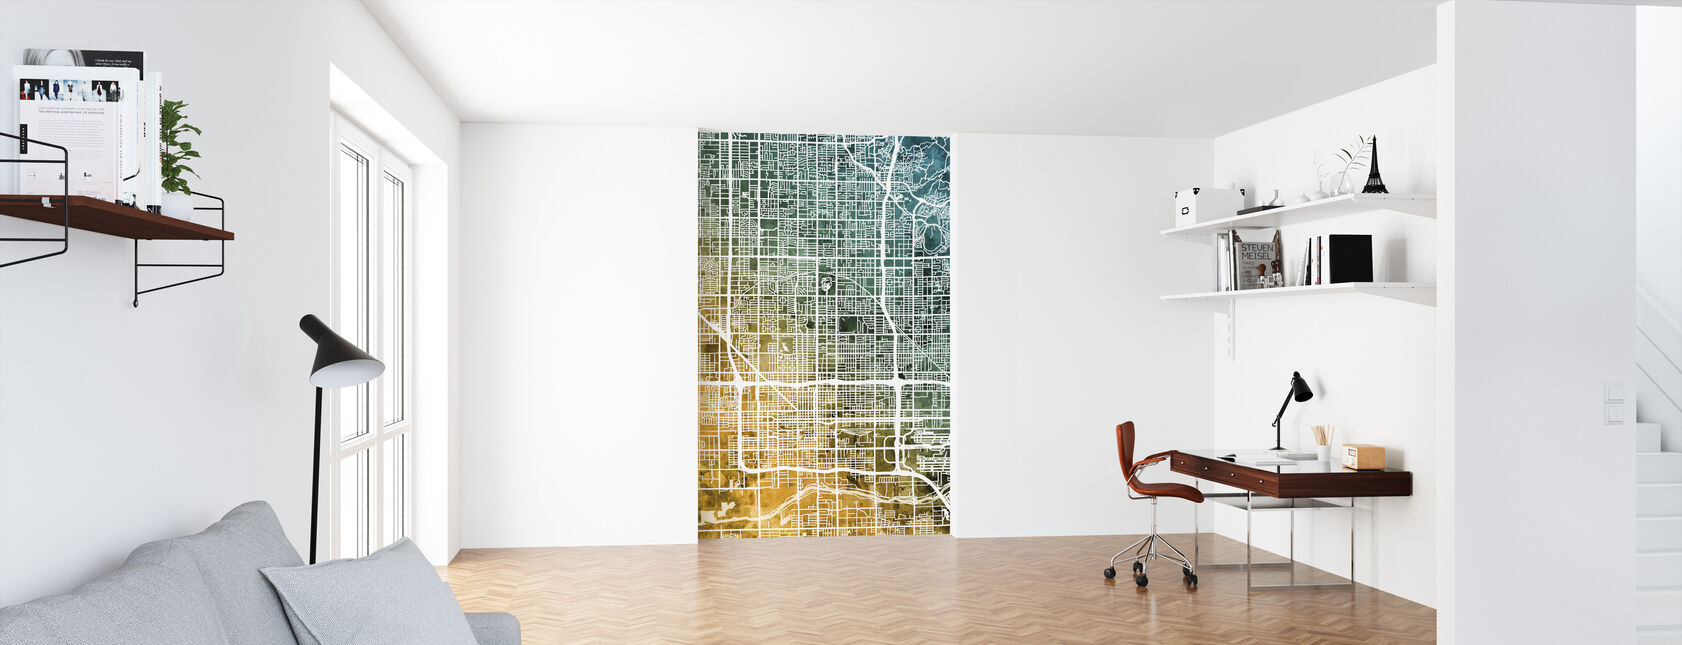 Phoenix Arizona City Map - Wallpaper - Office